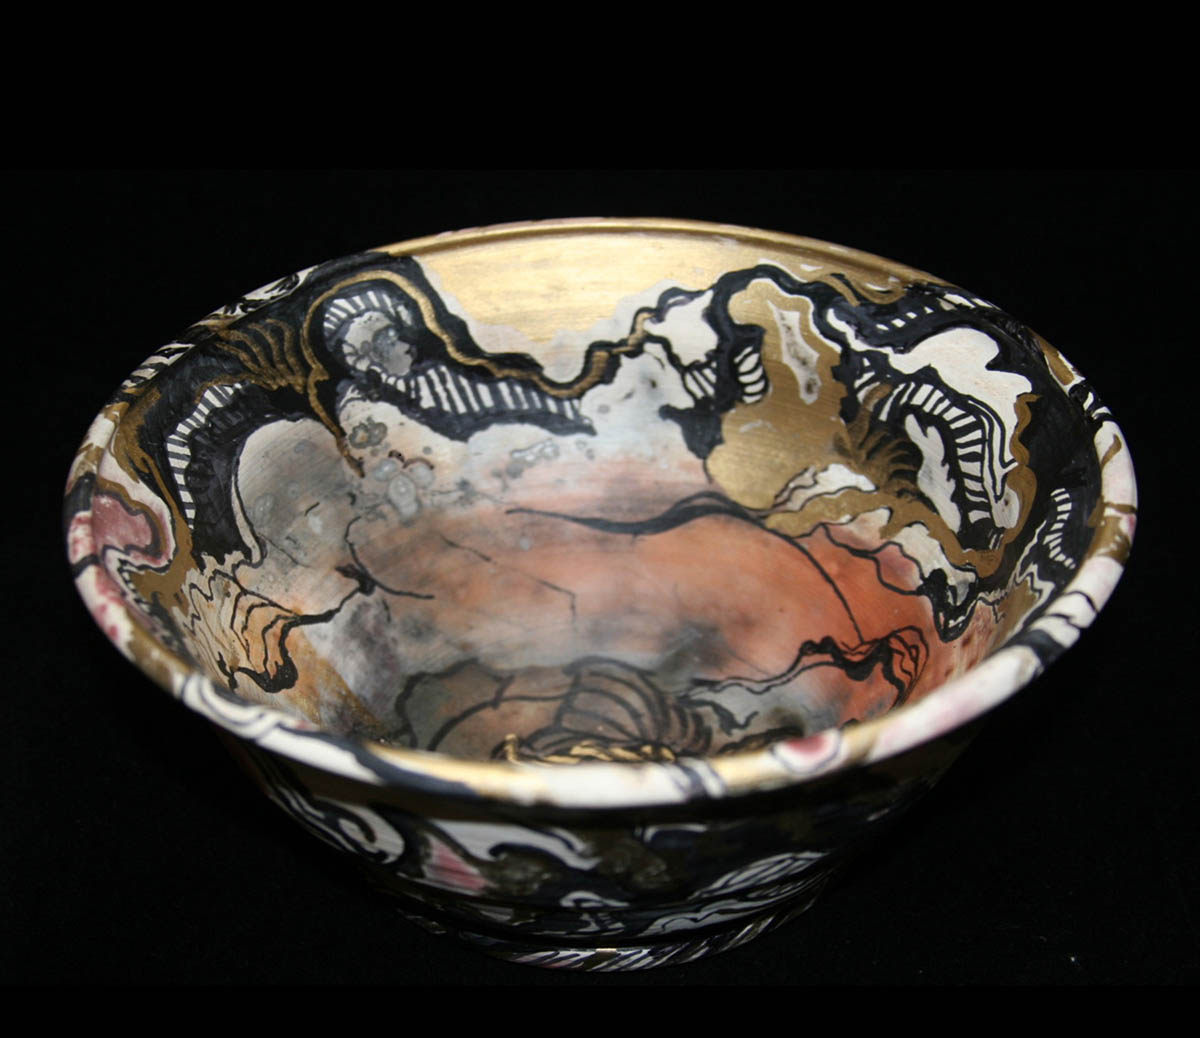 Ceramic bowl by Reba Robinson.